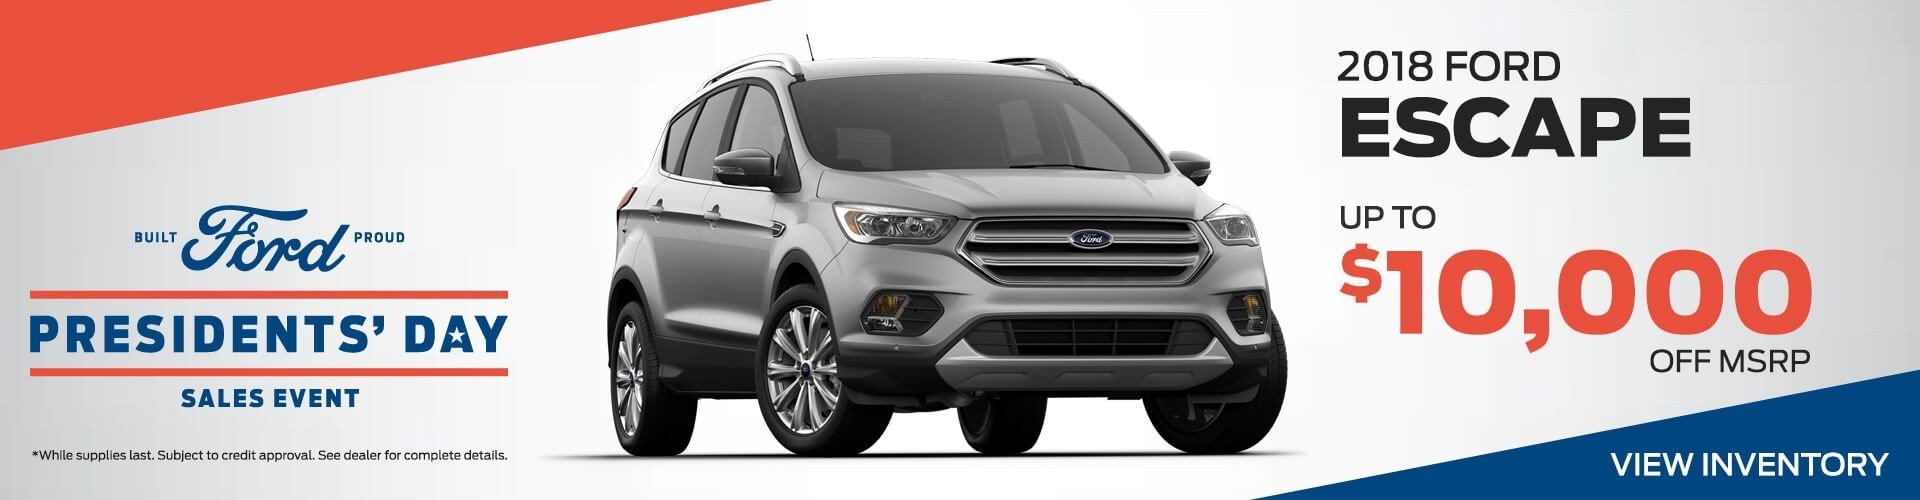 New Used Ford Cars For Sale Huntersville Ford